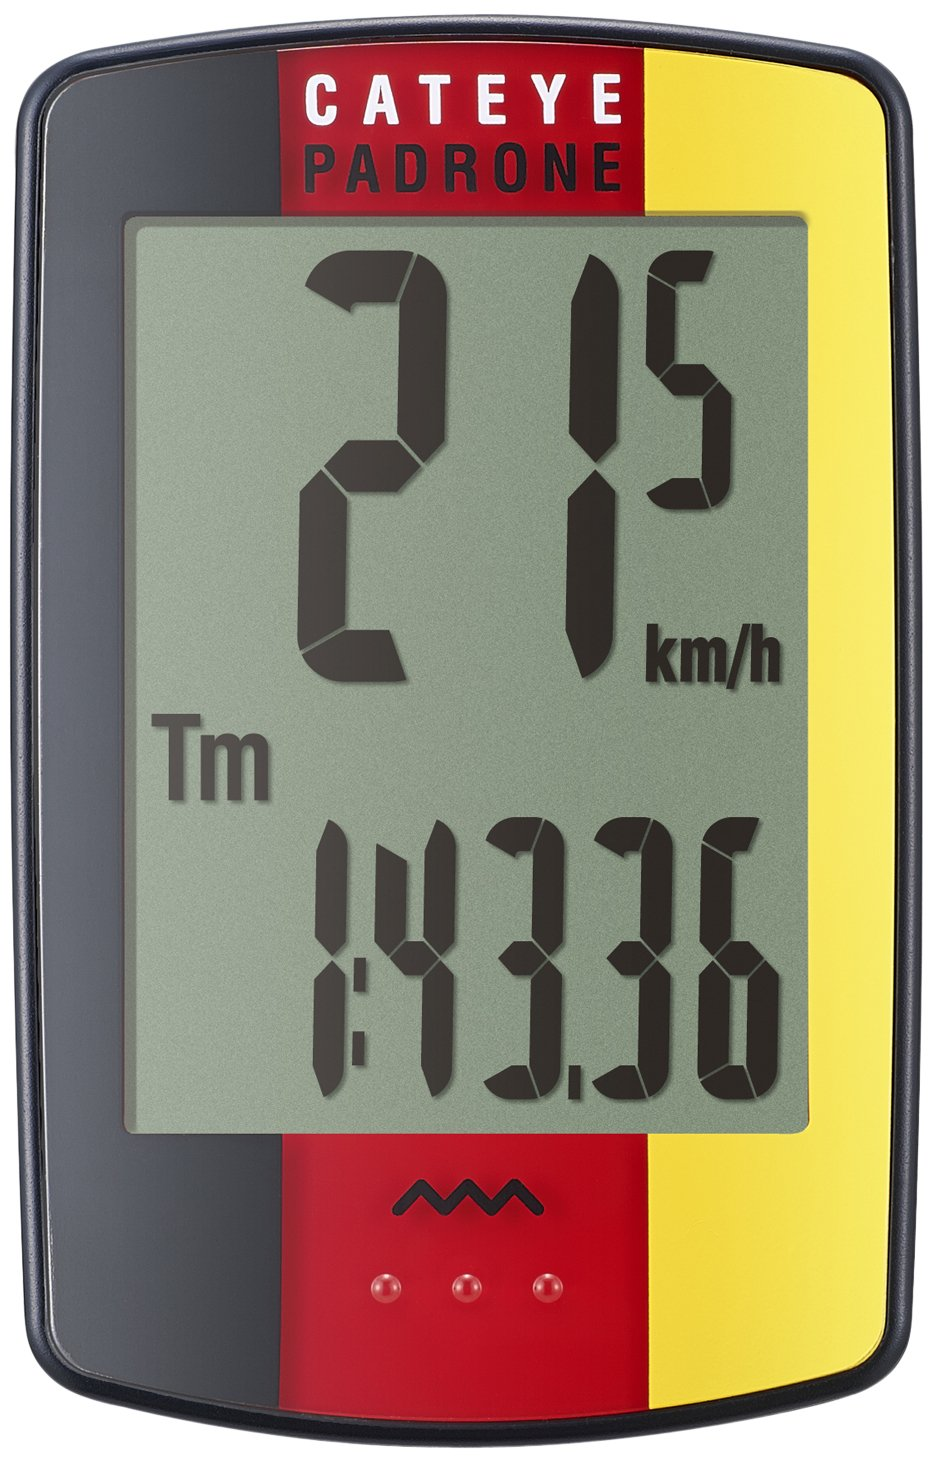 CatEye Padrone Cycling Computers (Germany)